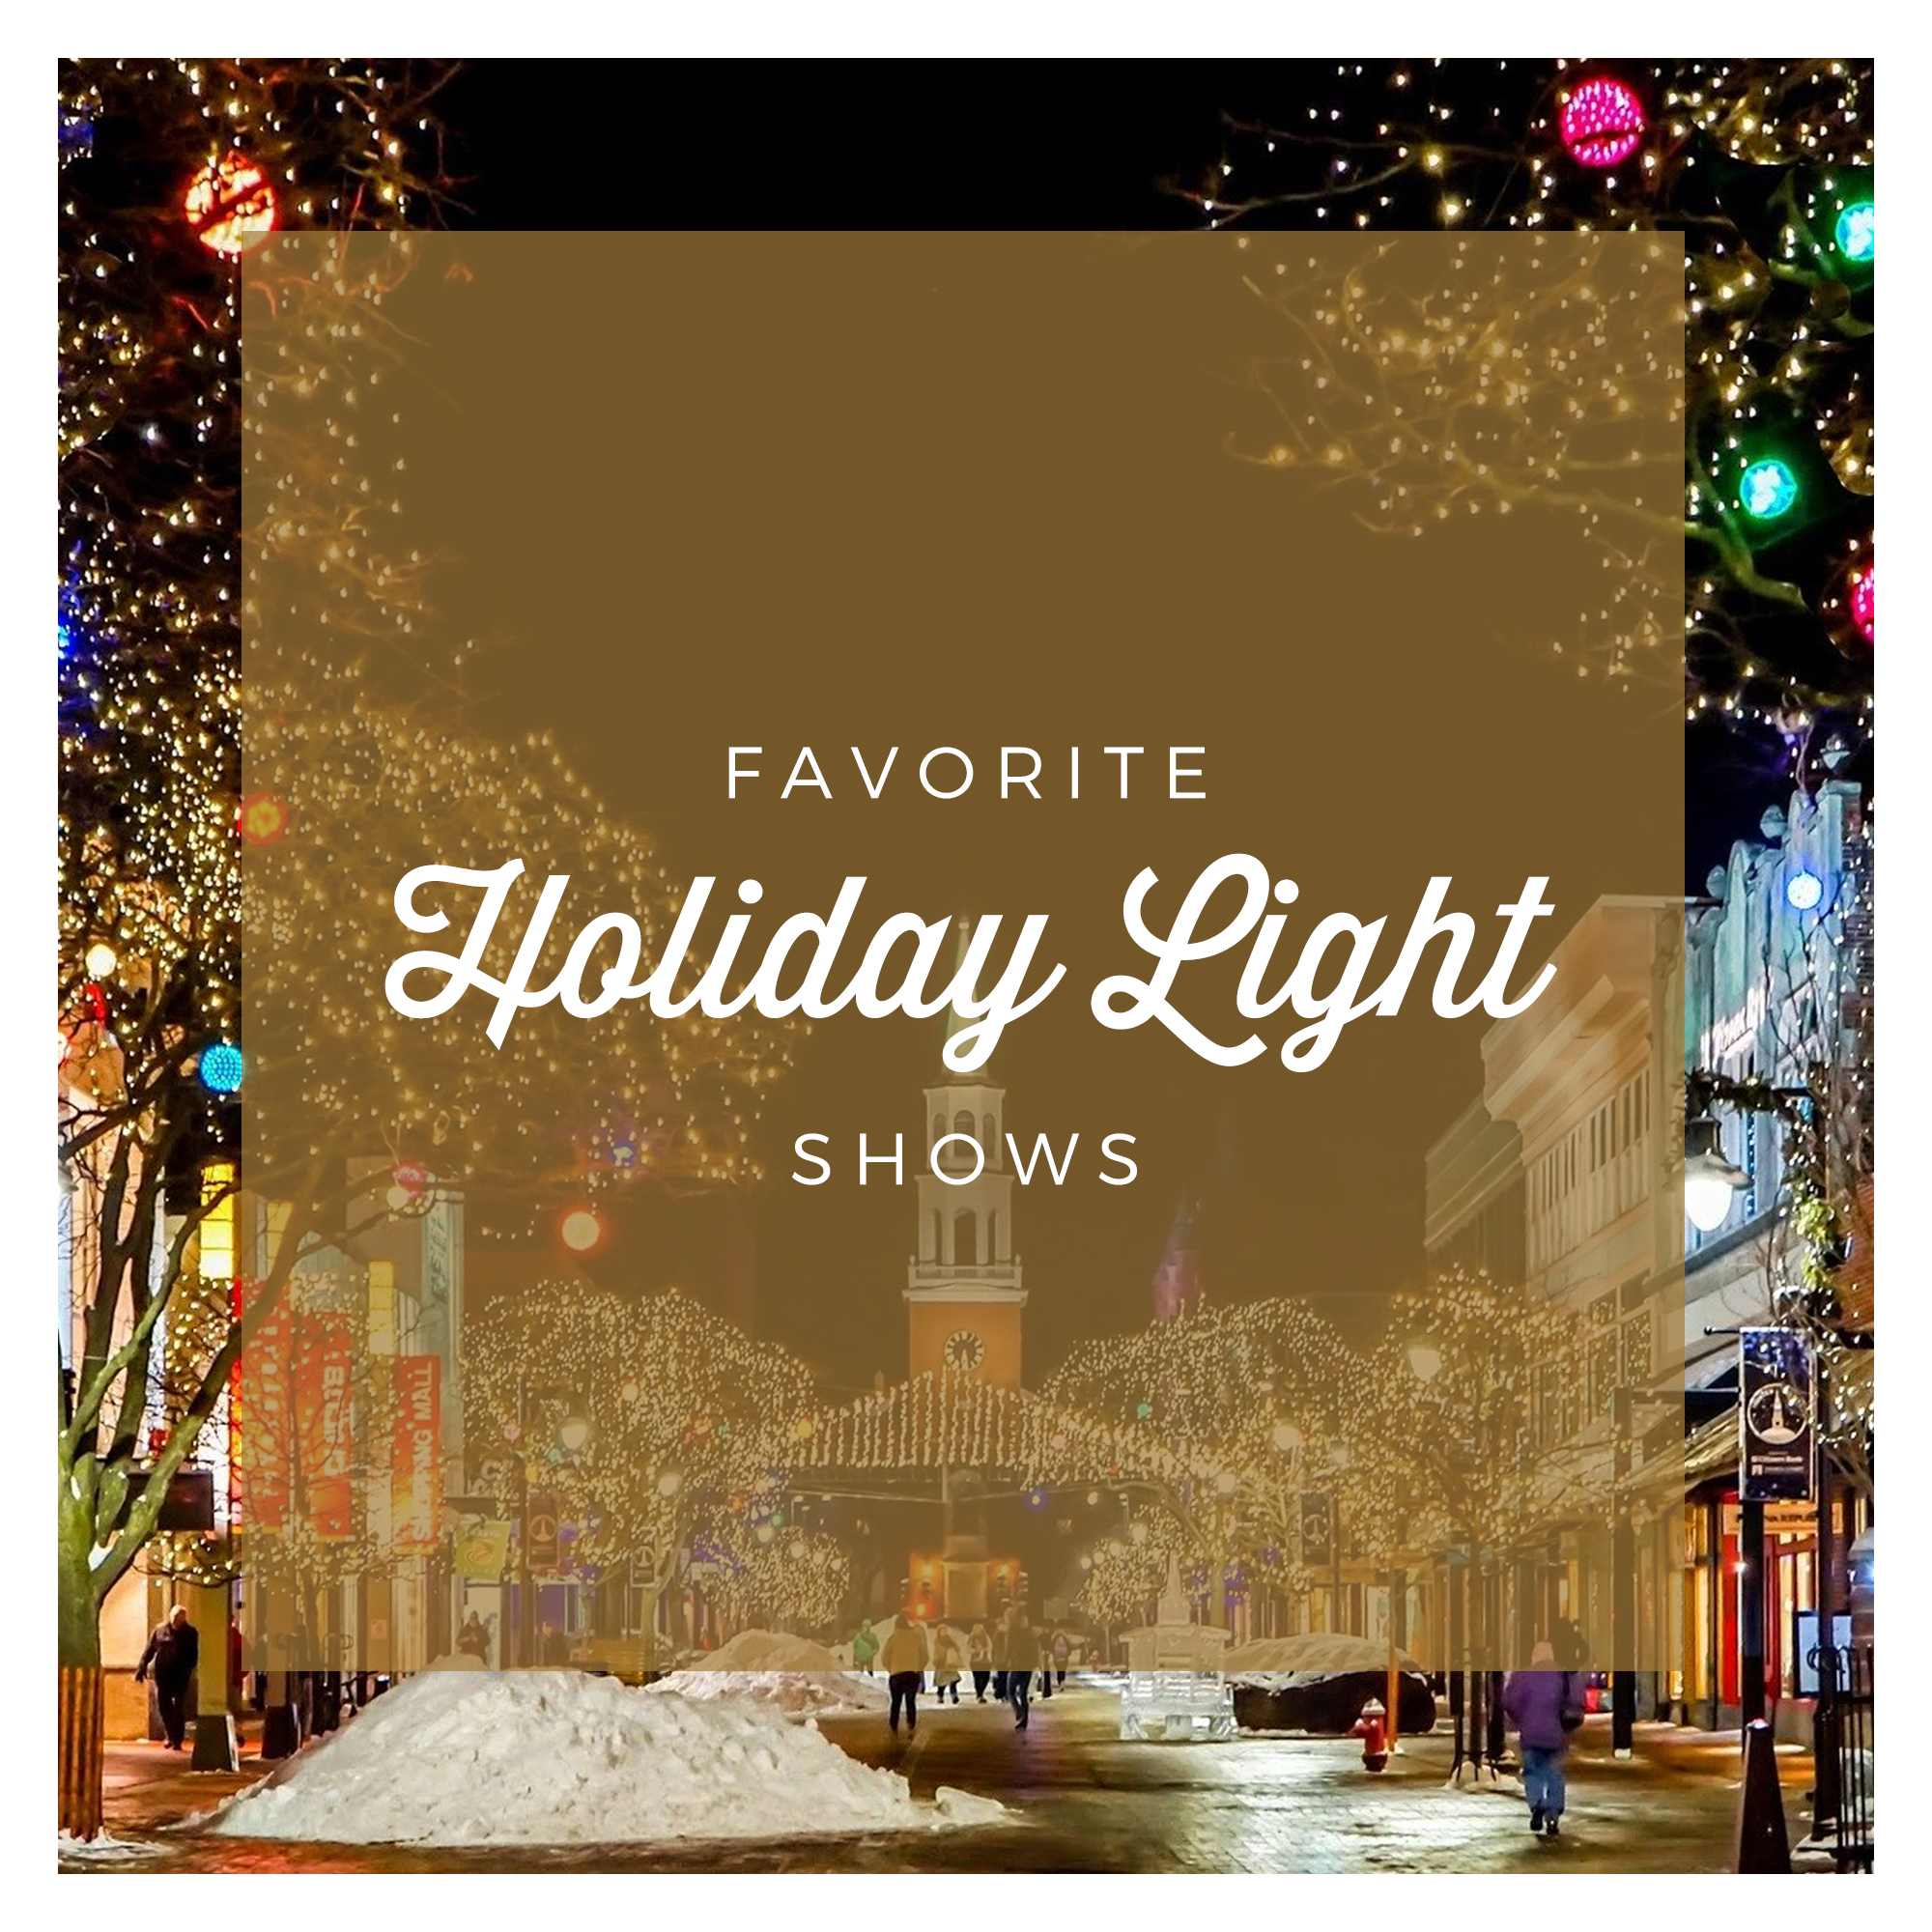 Best Holiday Light Displays in the Chicago land area